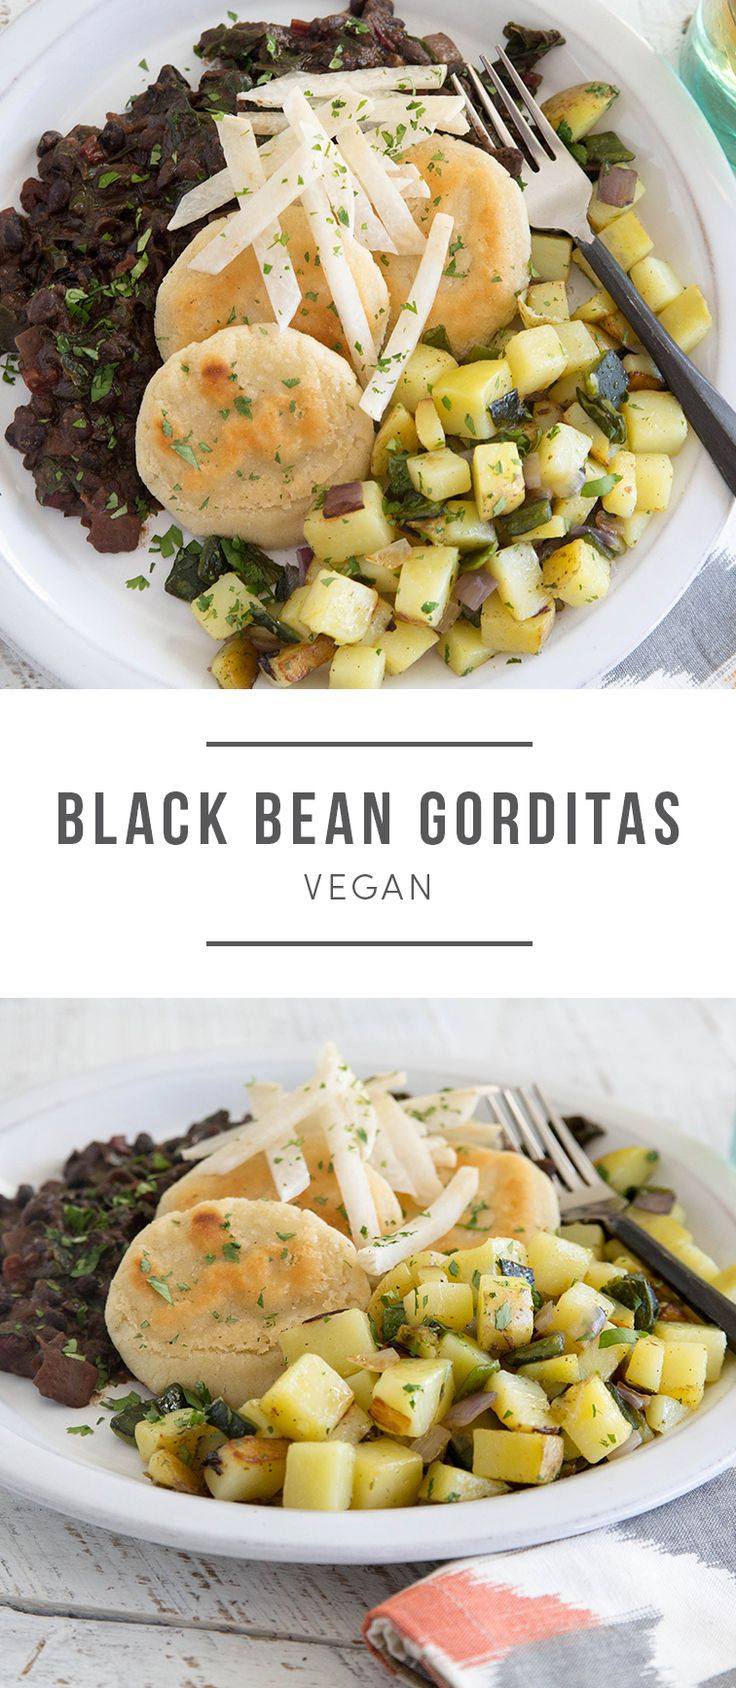 Vegan. Mexican flavors star in this hearty dish. Gorditas — thick masa cakes with savory toppings — are prepared here with roasted poblano chili mixed with sautéed potatoes. The veggies are served alongside lightly browned masa cakes. . Recipe here: https://greenchef.com/menus/main?utm_source=pinterest&utm_medium=link&utm_campaign=social&utm_content=blackbeangorditas